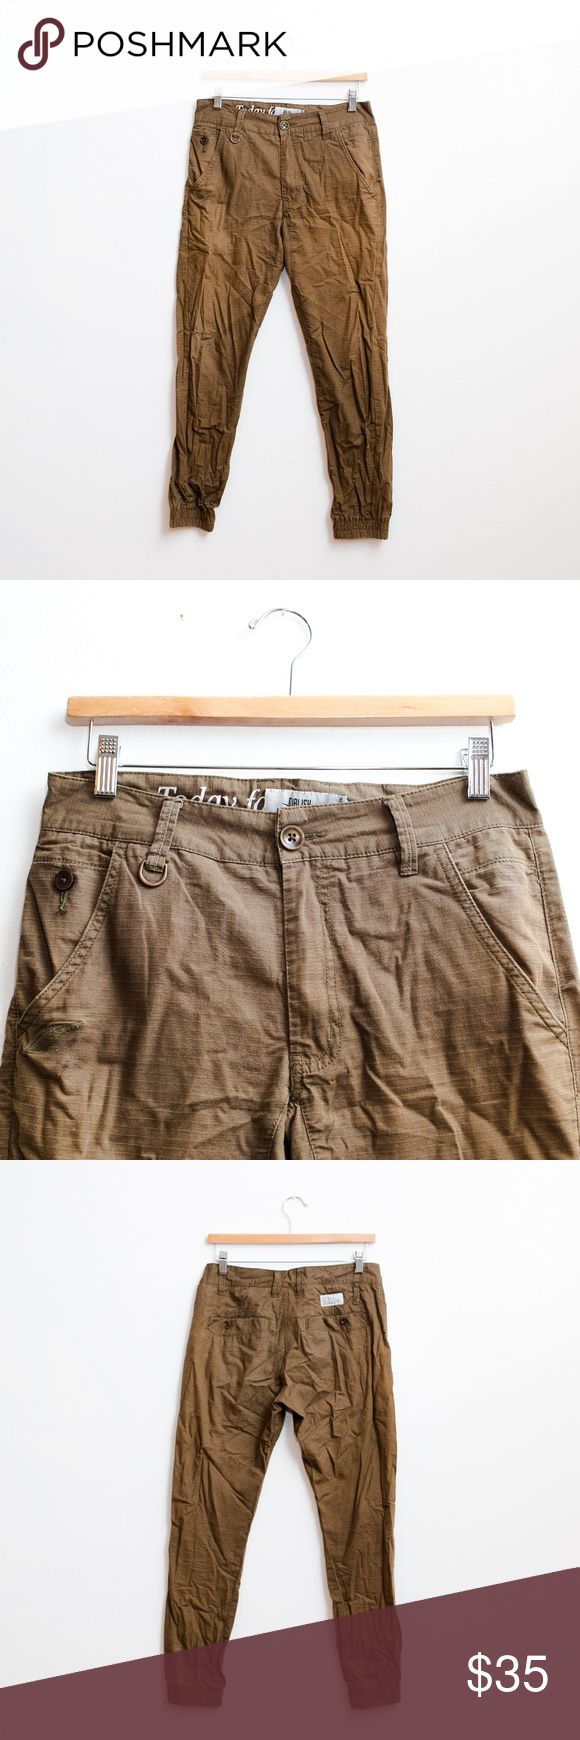 Publish Jogger Pants Brown Worn Publish jogger, has a ripstop looking material but feels like chino, wrinkled. Publish Pants Sweatpants & Joggers